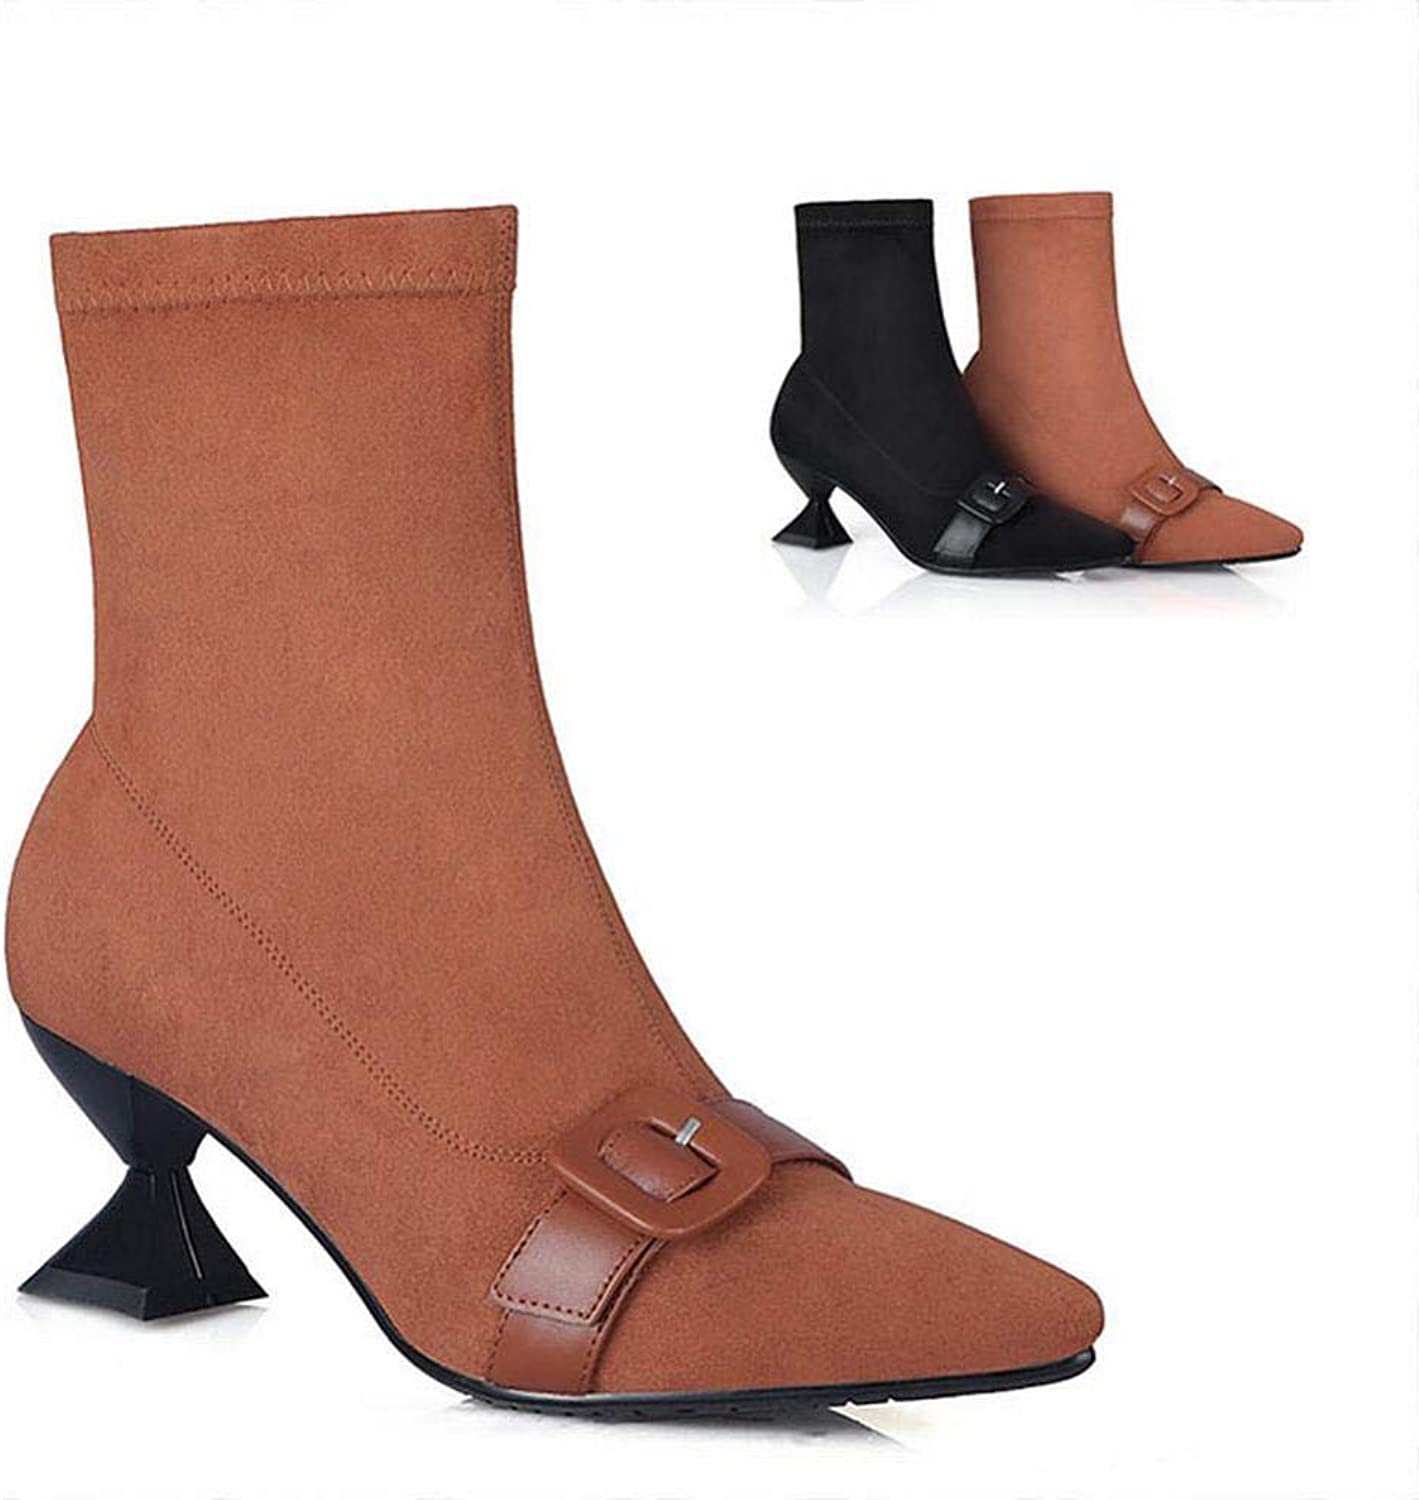 Women's Boots - Winter Non-Slip Warm Boots Fashion Pointed Square Root Boots   34-39